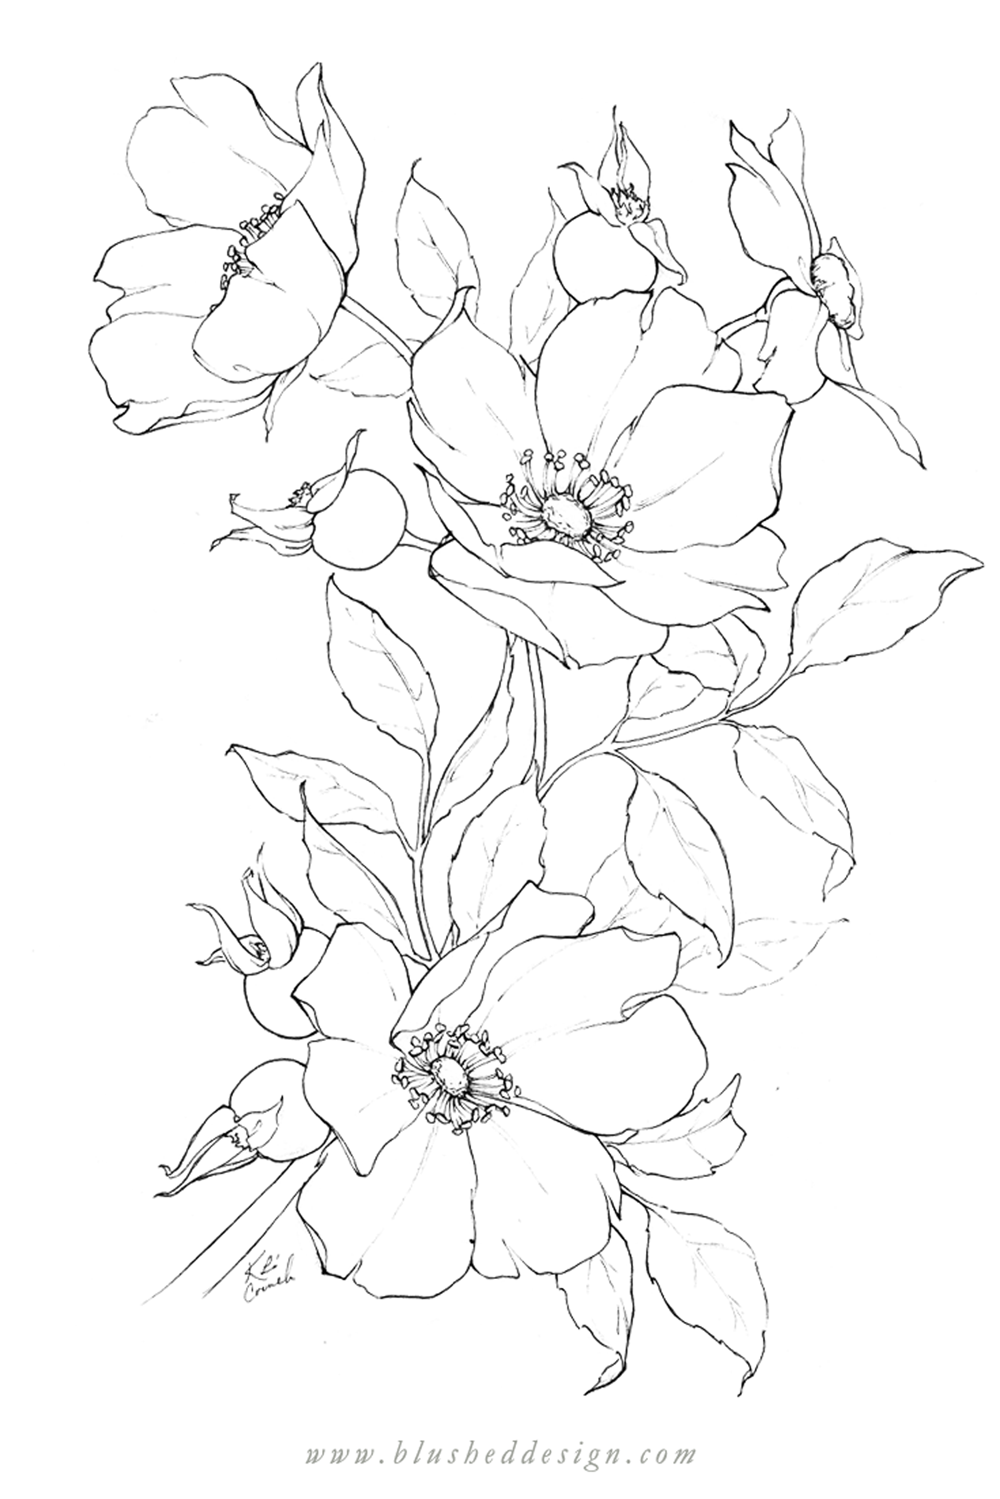 I love these wild roses at peek bloom!  There's something about pencil flower drawings that makes my heart sing.  Whimsical wild rose pencil drawing by Katrina of Blushed Design. #floraldrawing #flowerdrawing #botanicalillustration #wildroses #rosetattoo